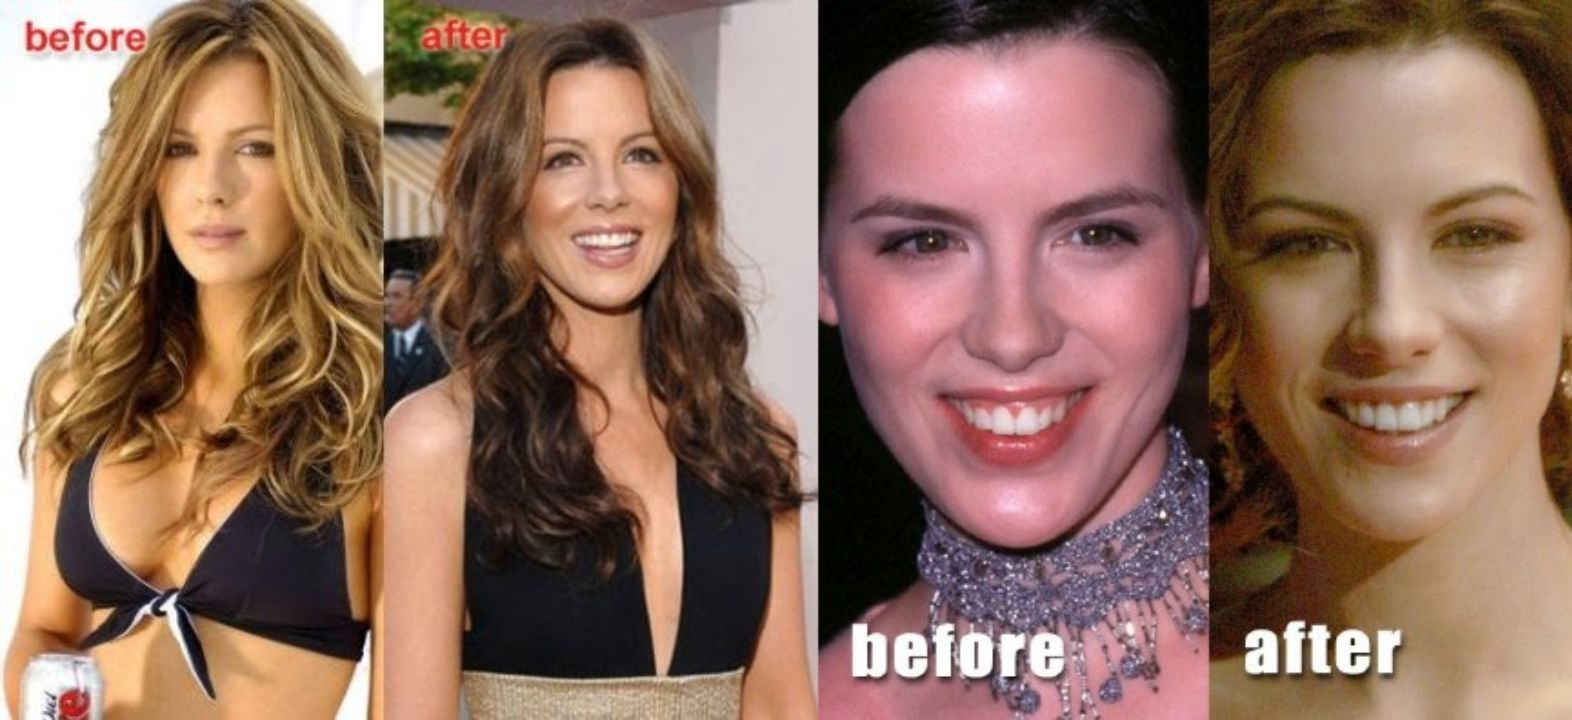 Kate Beckinsale before and after plastic surgery.